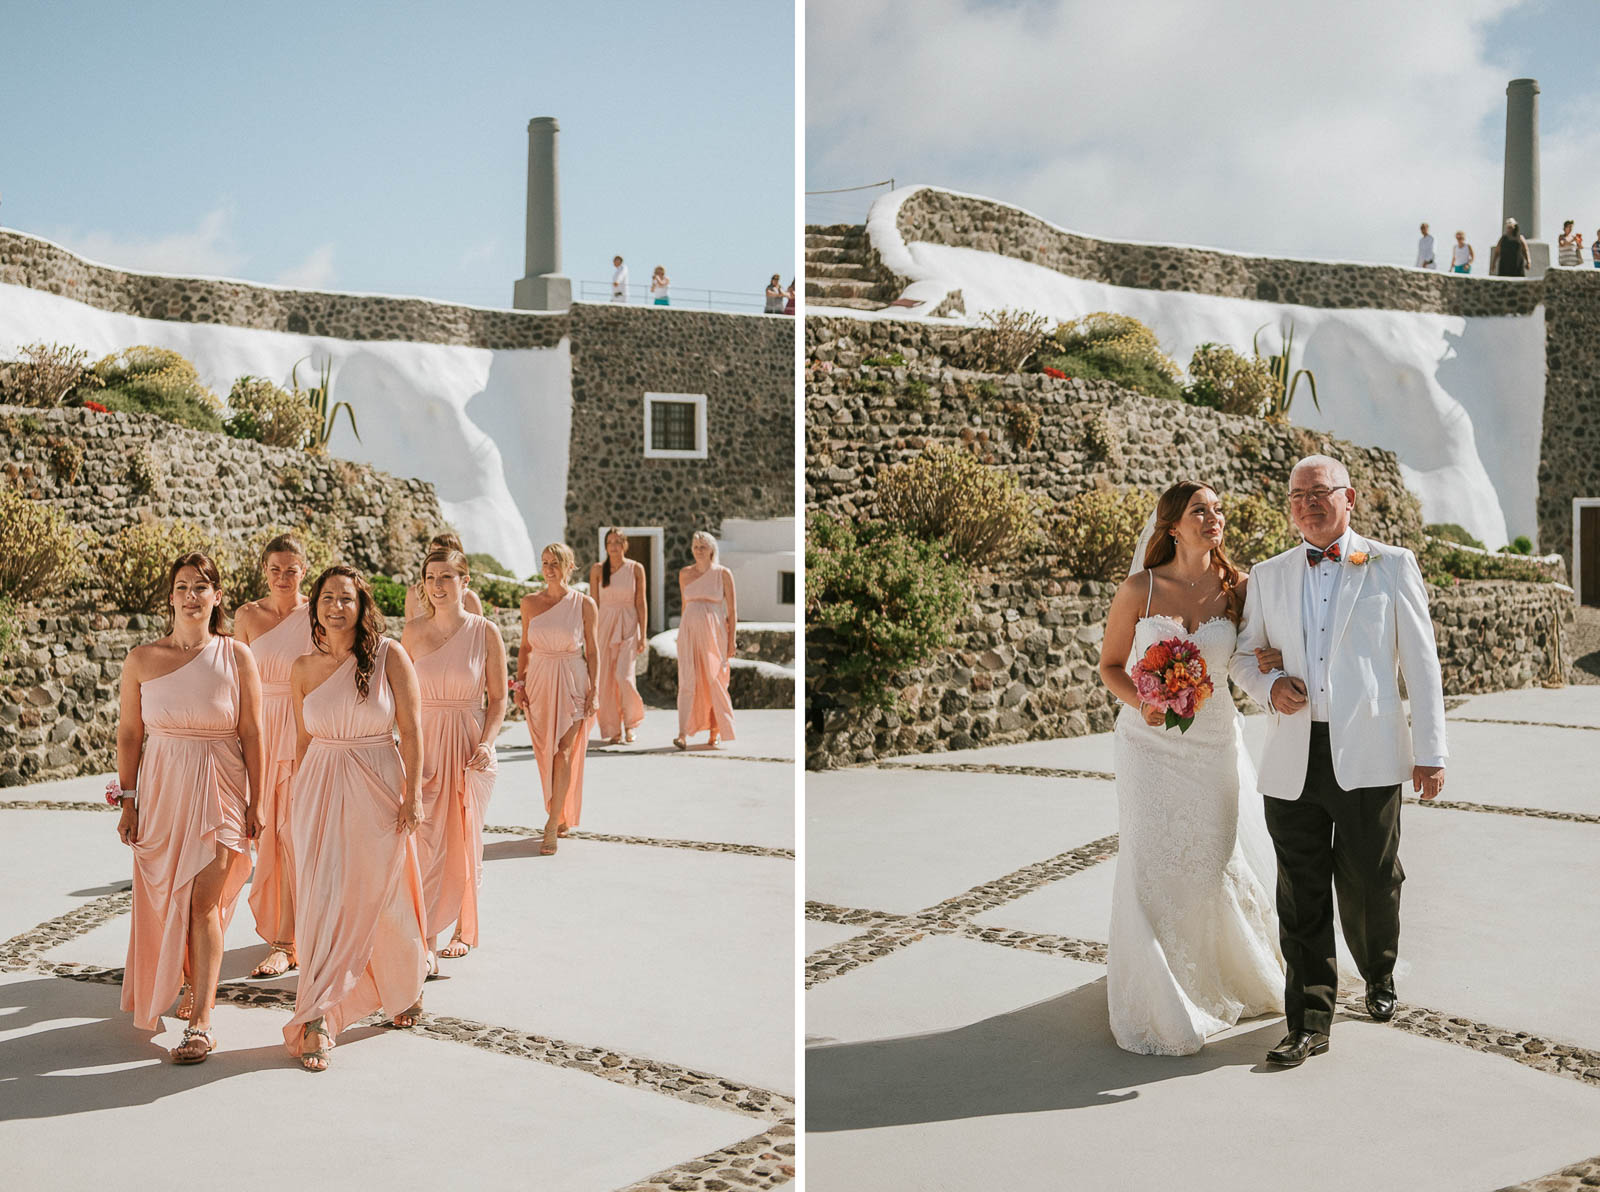 Santorini-Wedding-Photographer-Greece-Destination-Weddings-Mait-Juriado-M&J-Studios-055